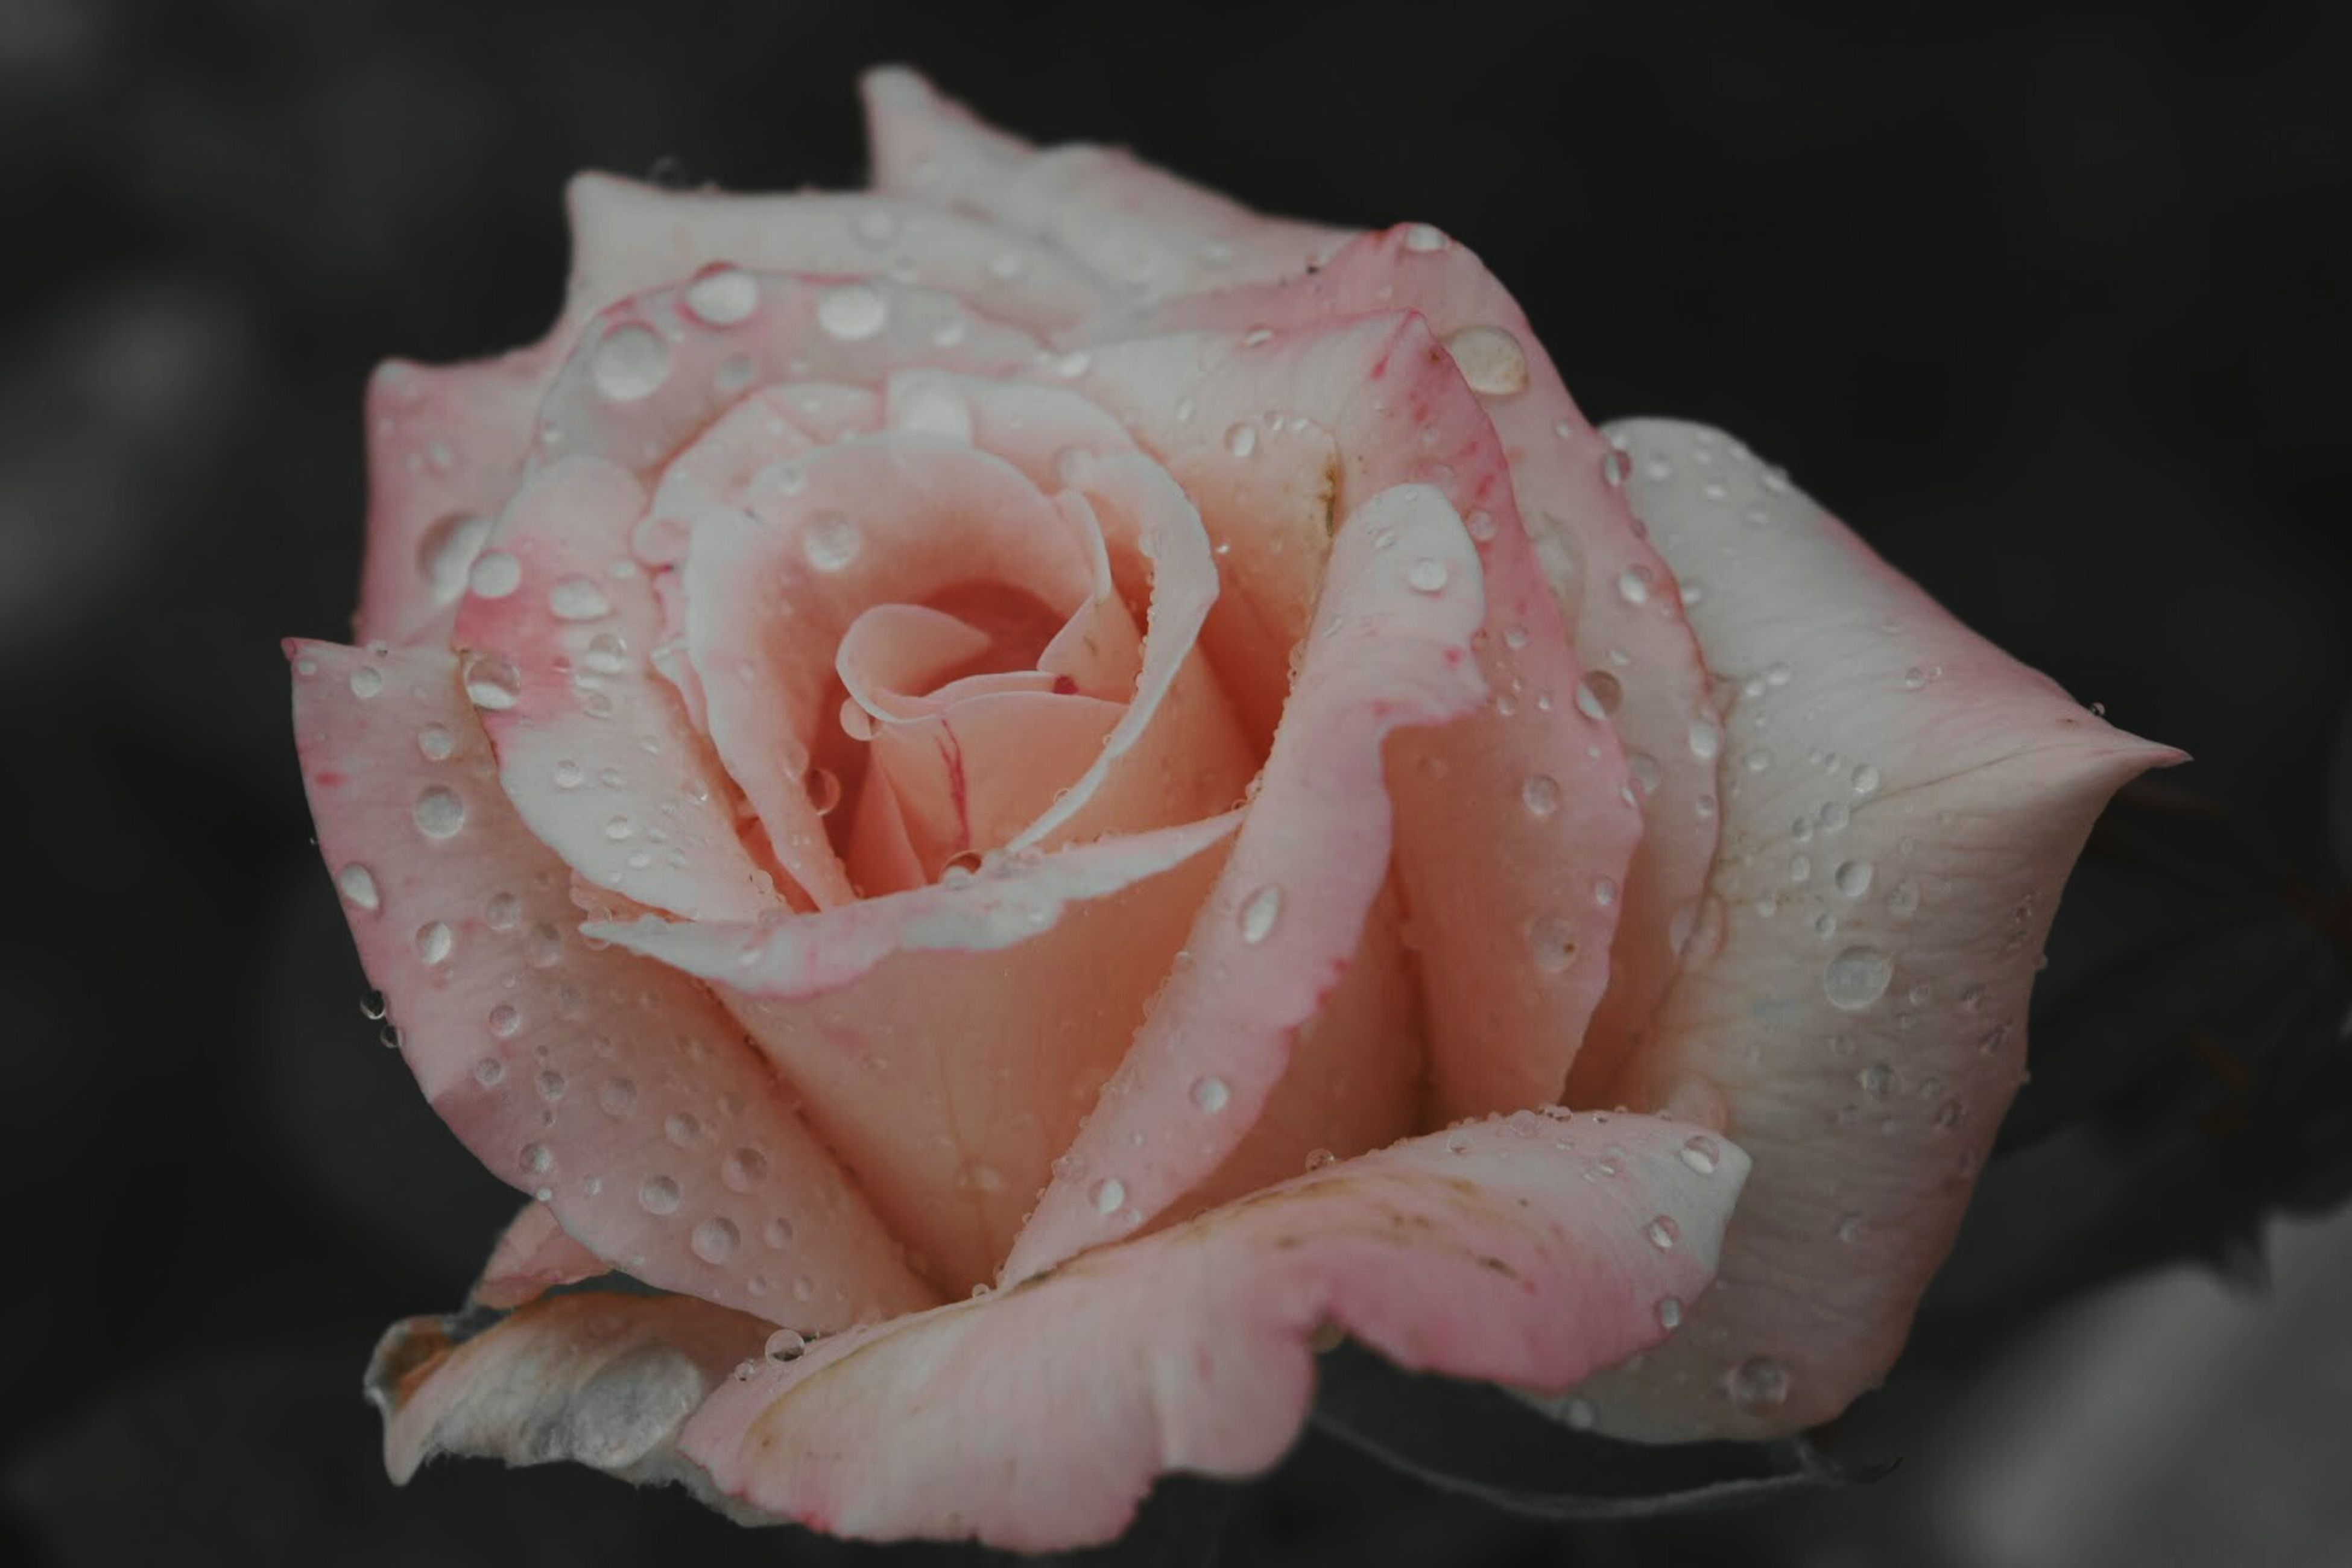 petal, flower, drop, freshness, fragility, flower head, close-up, wet, water, beauty in nature, growth, single flower, rose - flower, dew, nature, focus on foreground, blooming, plant, season, raindrop